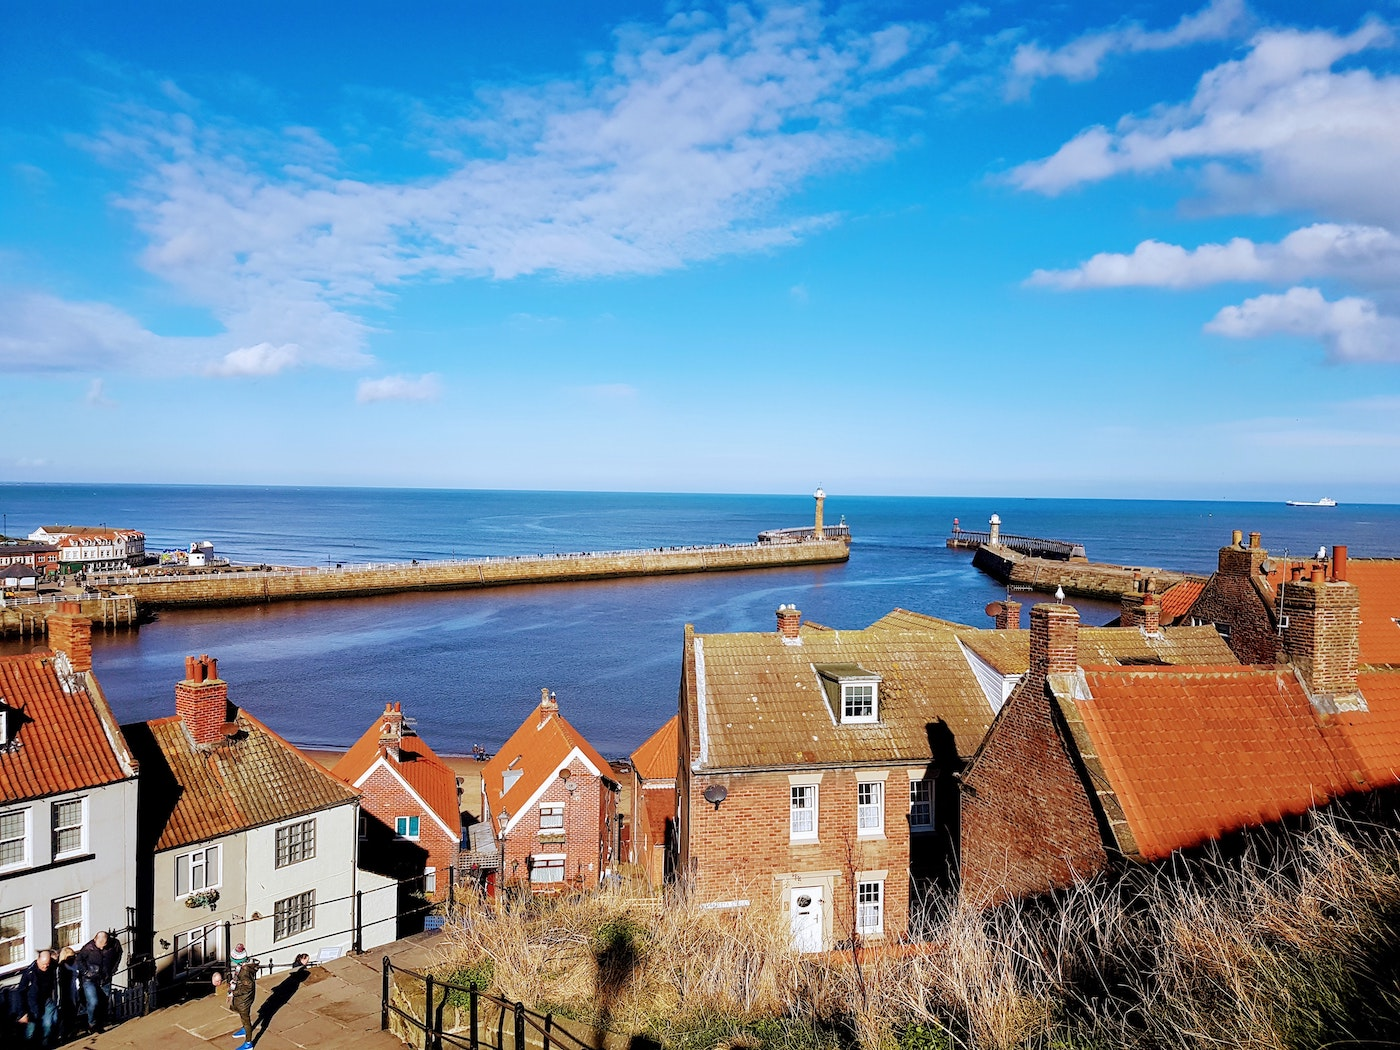 Most Popular Small Towns And Cities In The UK